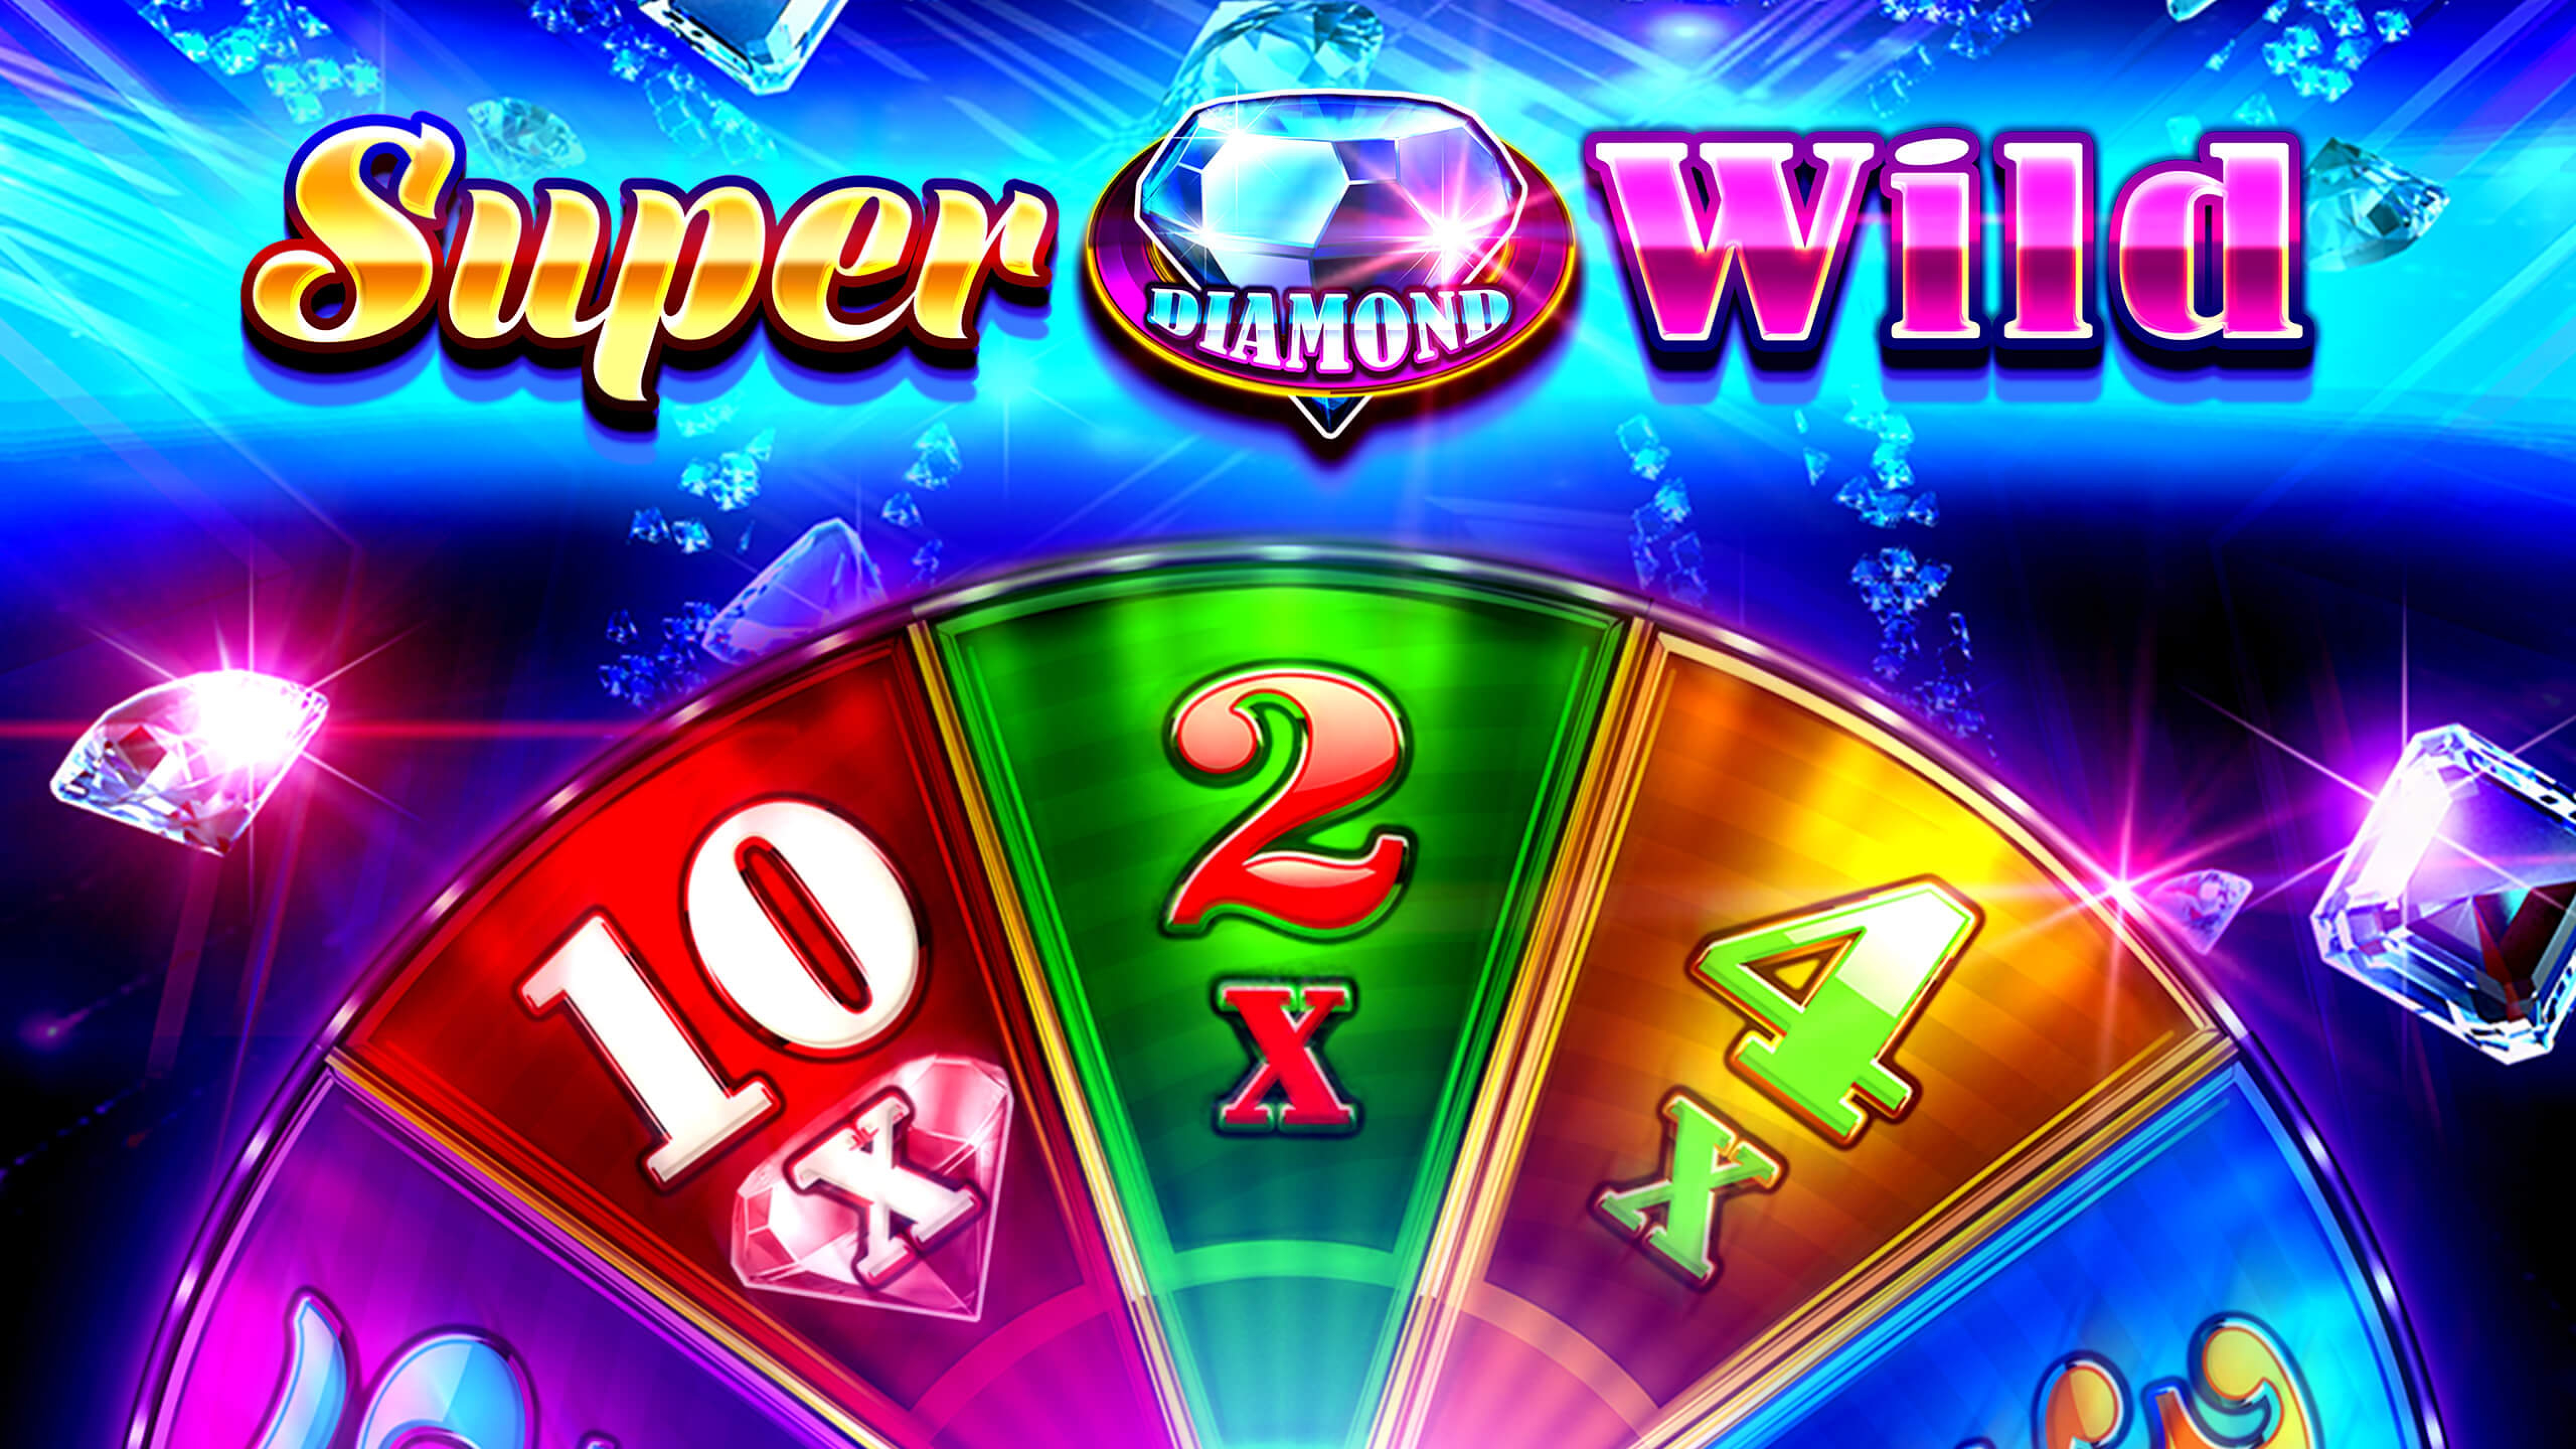 The Super Diamond Wild Online Slot Demo Game by iSoftBet